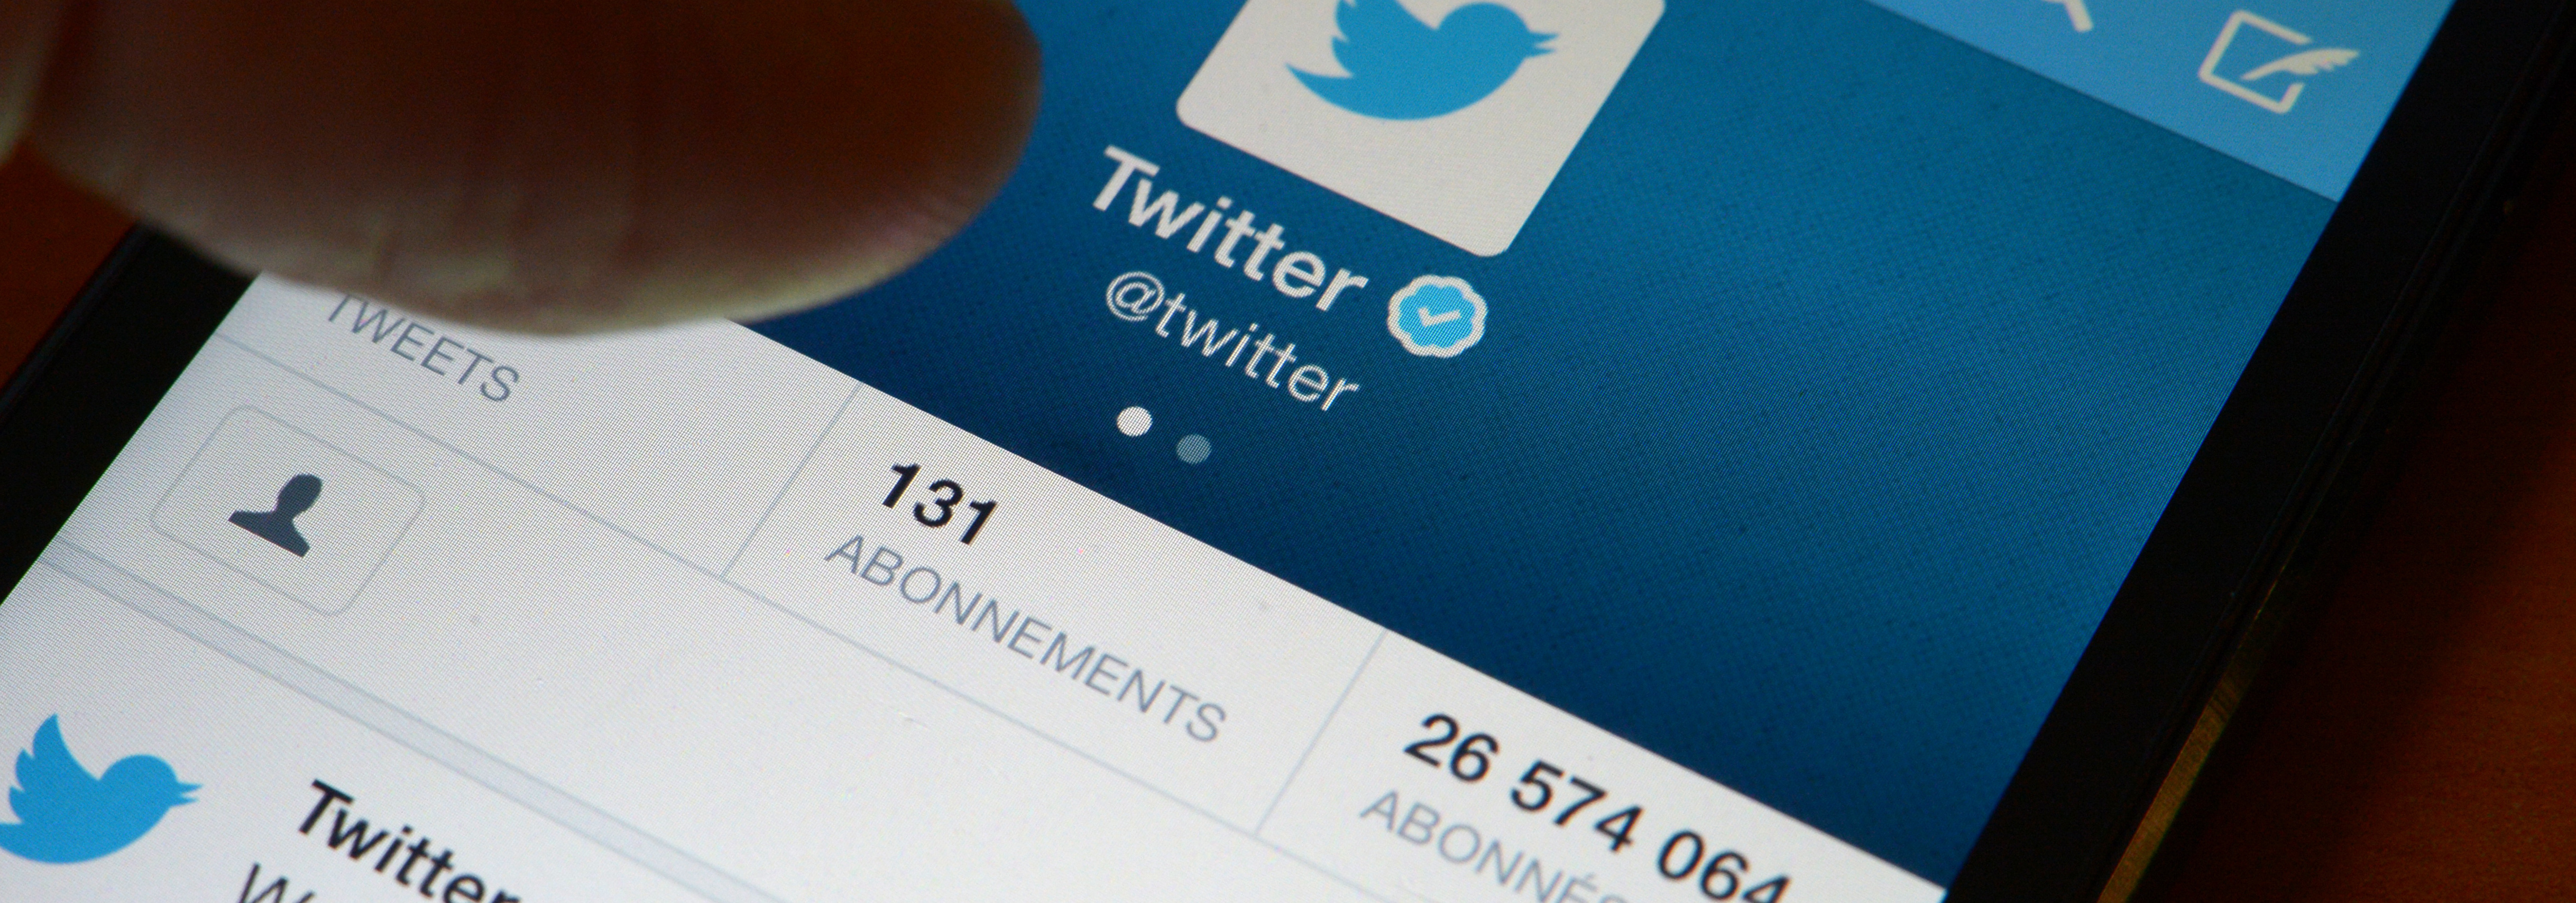 Twitter's Mobile Apps Now Let You Embed Tweets in Tweets